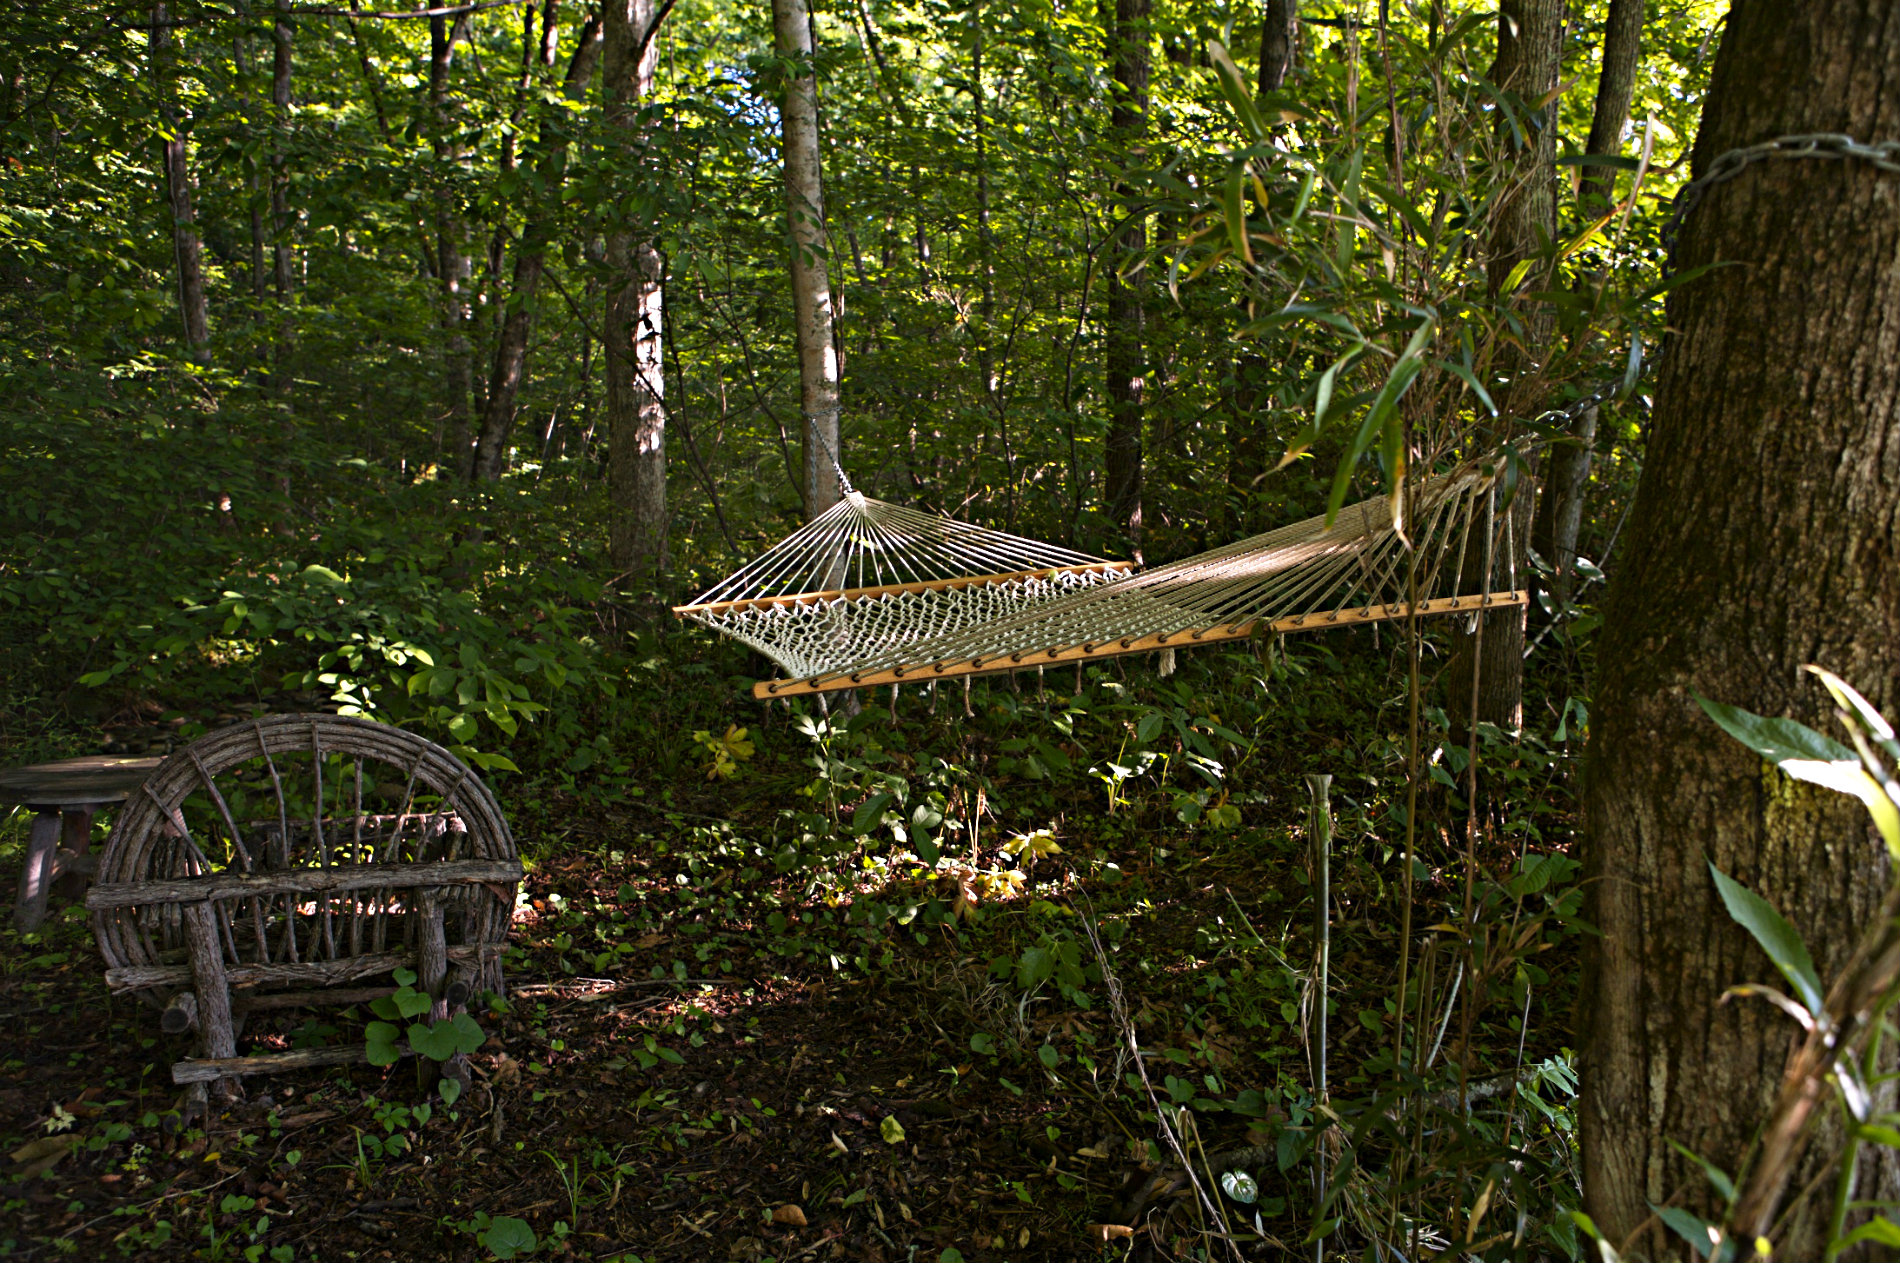 Hammock hanging in forest surrounded by green trees